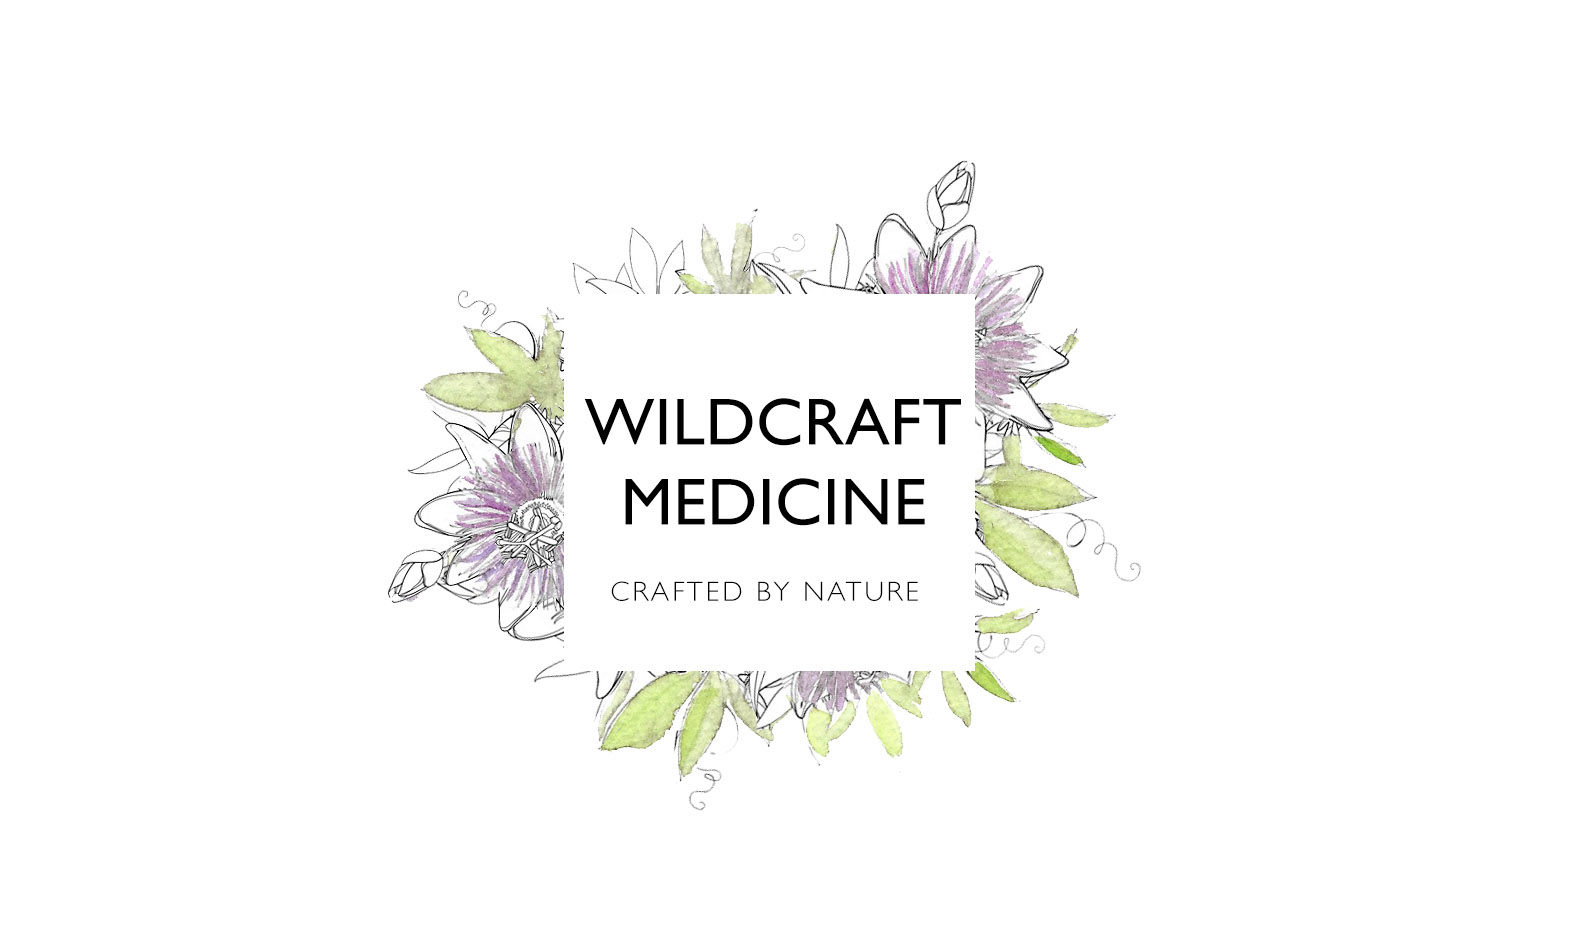 Wildcraft Medicine